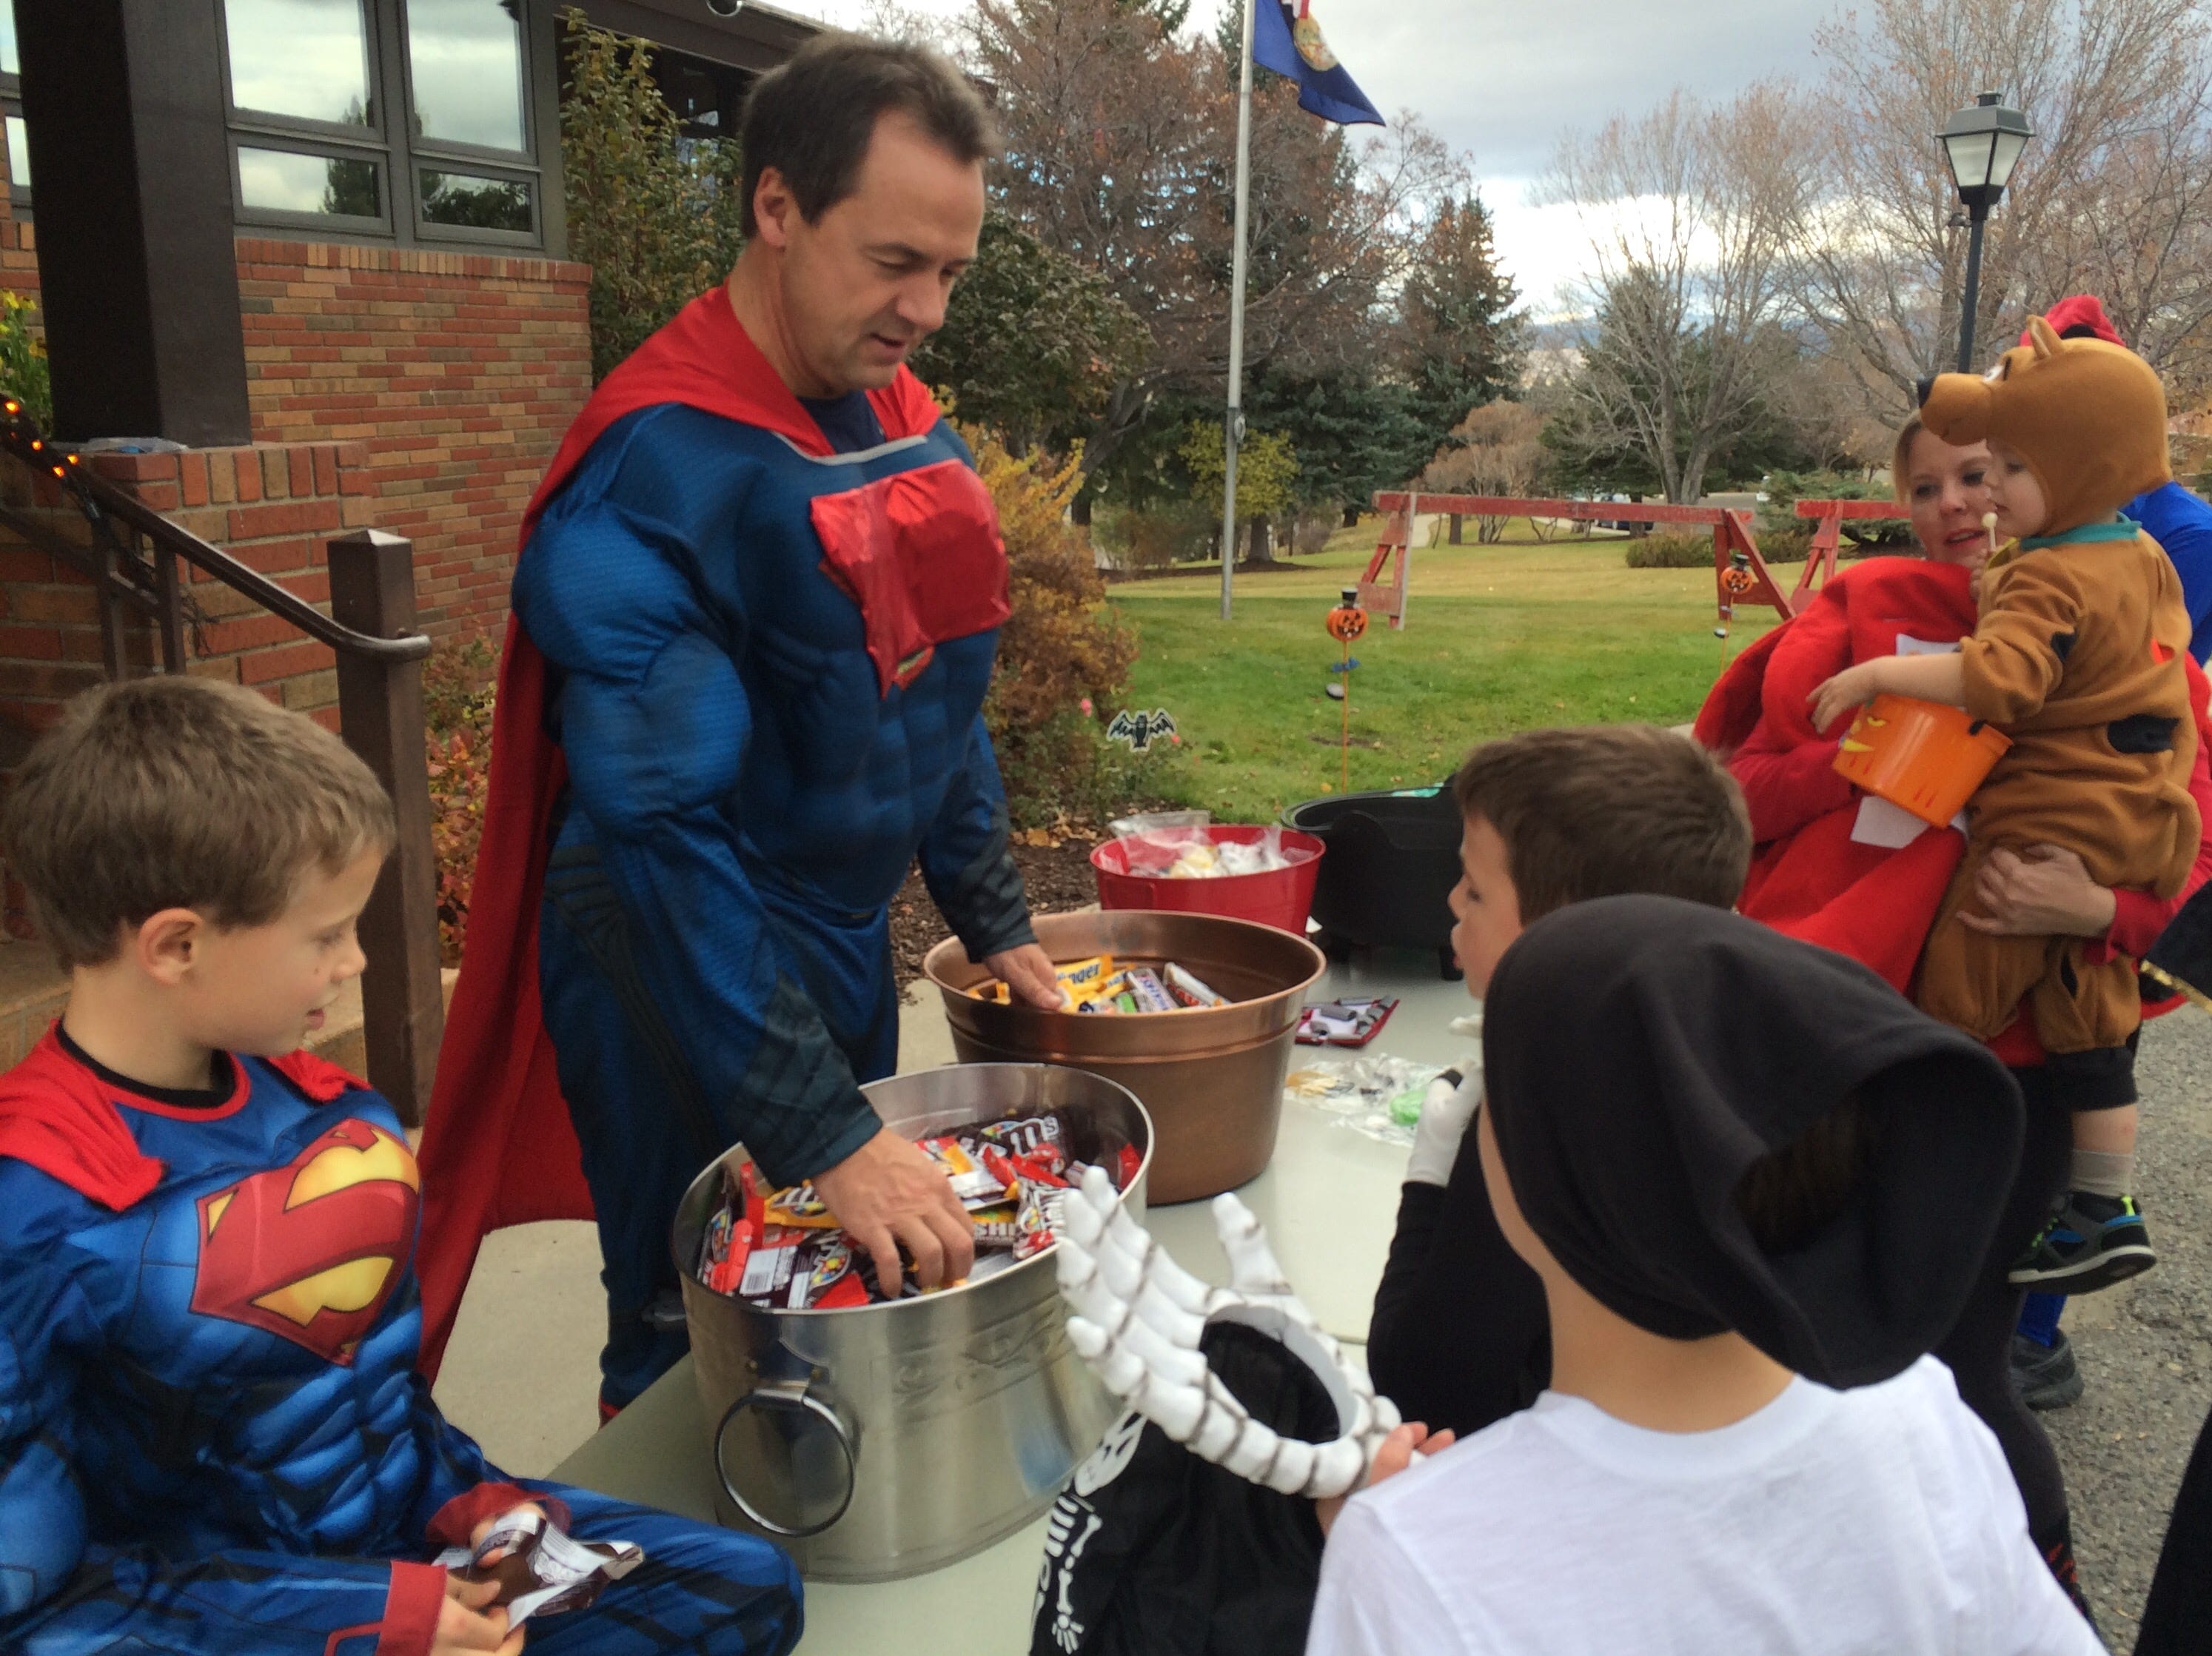 Tribune photo/Phil Drake Super Montana,? aka Gov. Steve Bullock, hands out candy to trick-or-treaters Saturday in front of the governor?s mansion in Helena. The governor held back on giving candy until visitors said trick or treat.